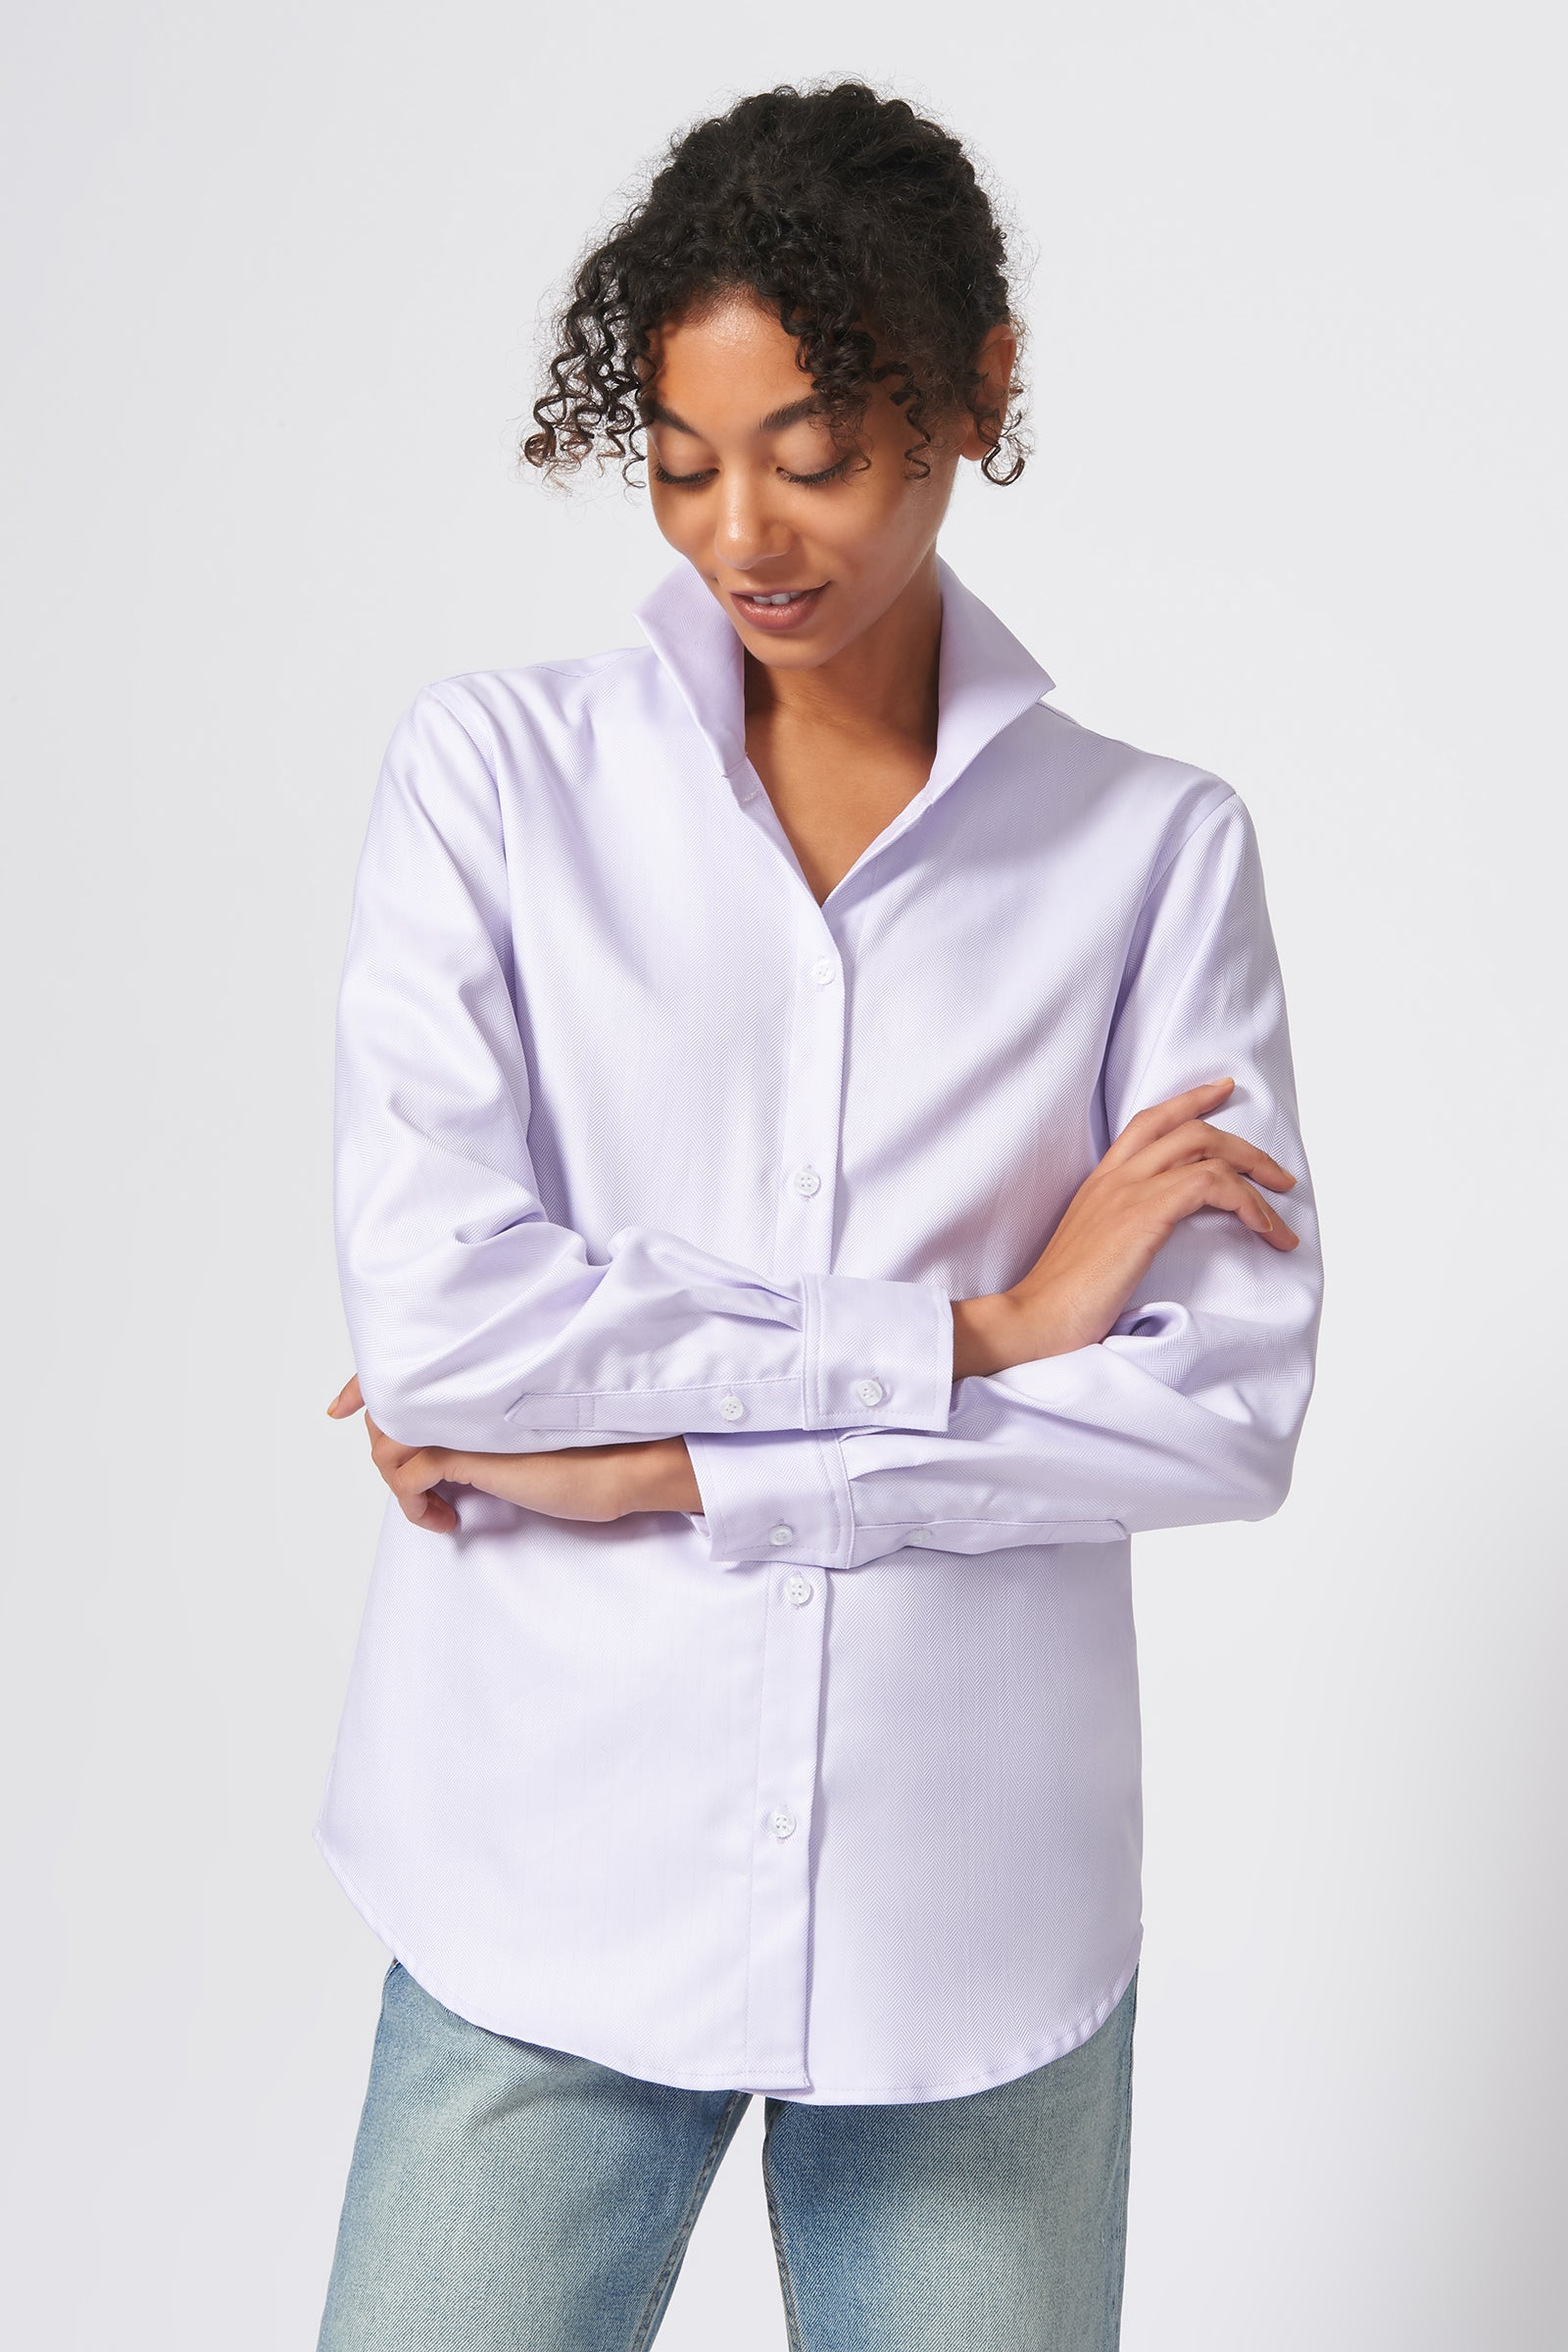 Kal Rieman Ginna Box Pleat Shirt in Lavendar Fine Herringbone on Model Front View